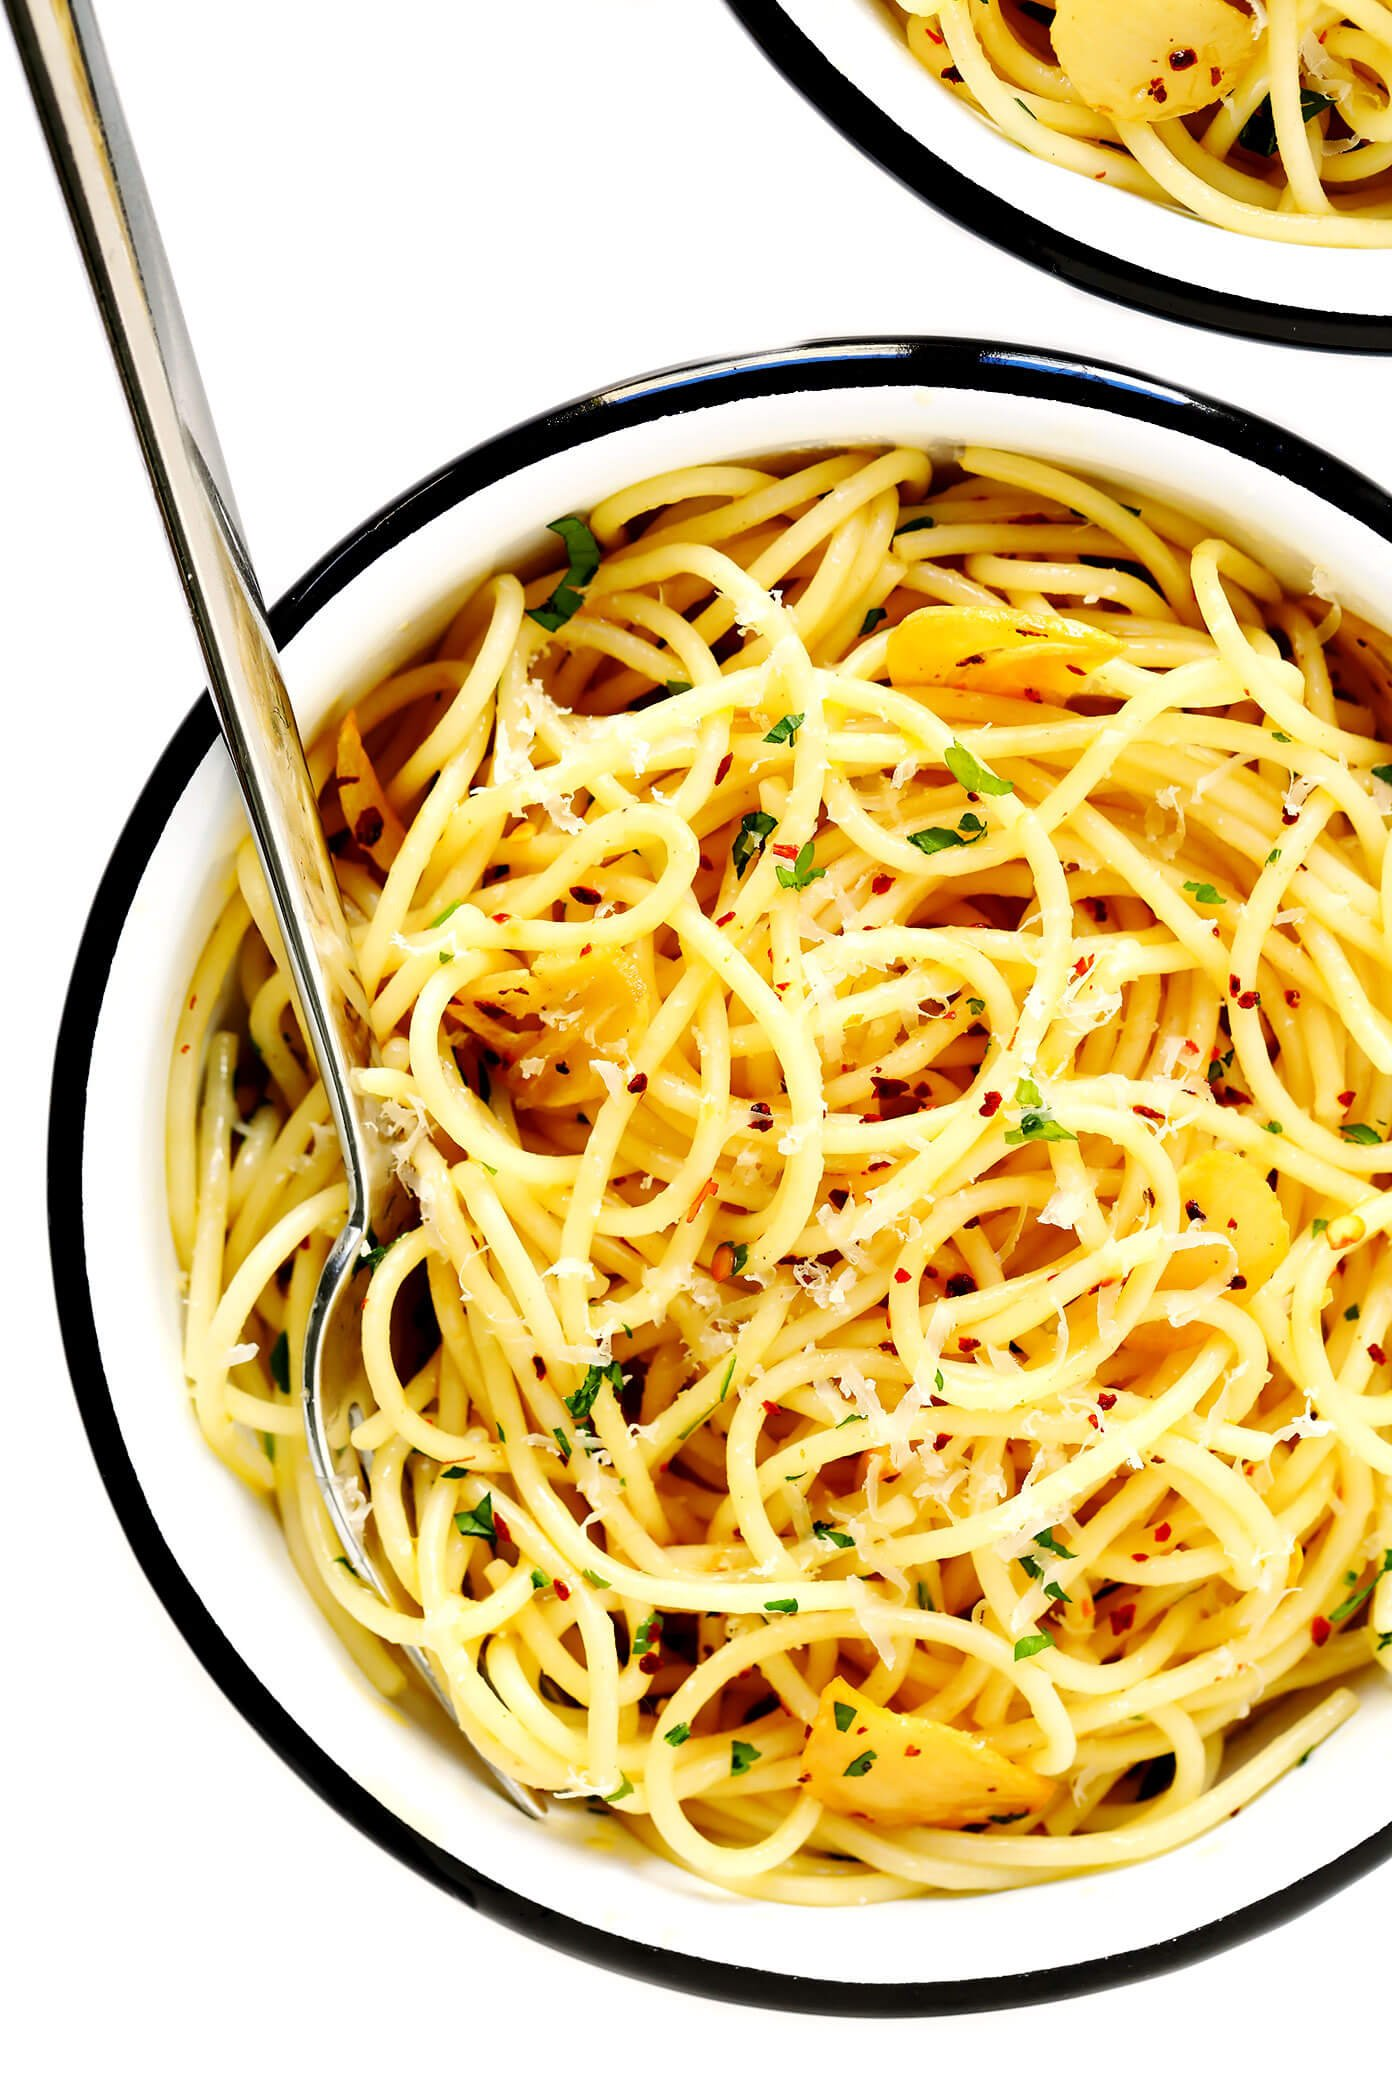 Spaghetti Aglio e Olio Recipe (Olive Oil and Garlic Sauce) Favorite Family Recipes